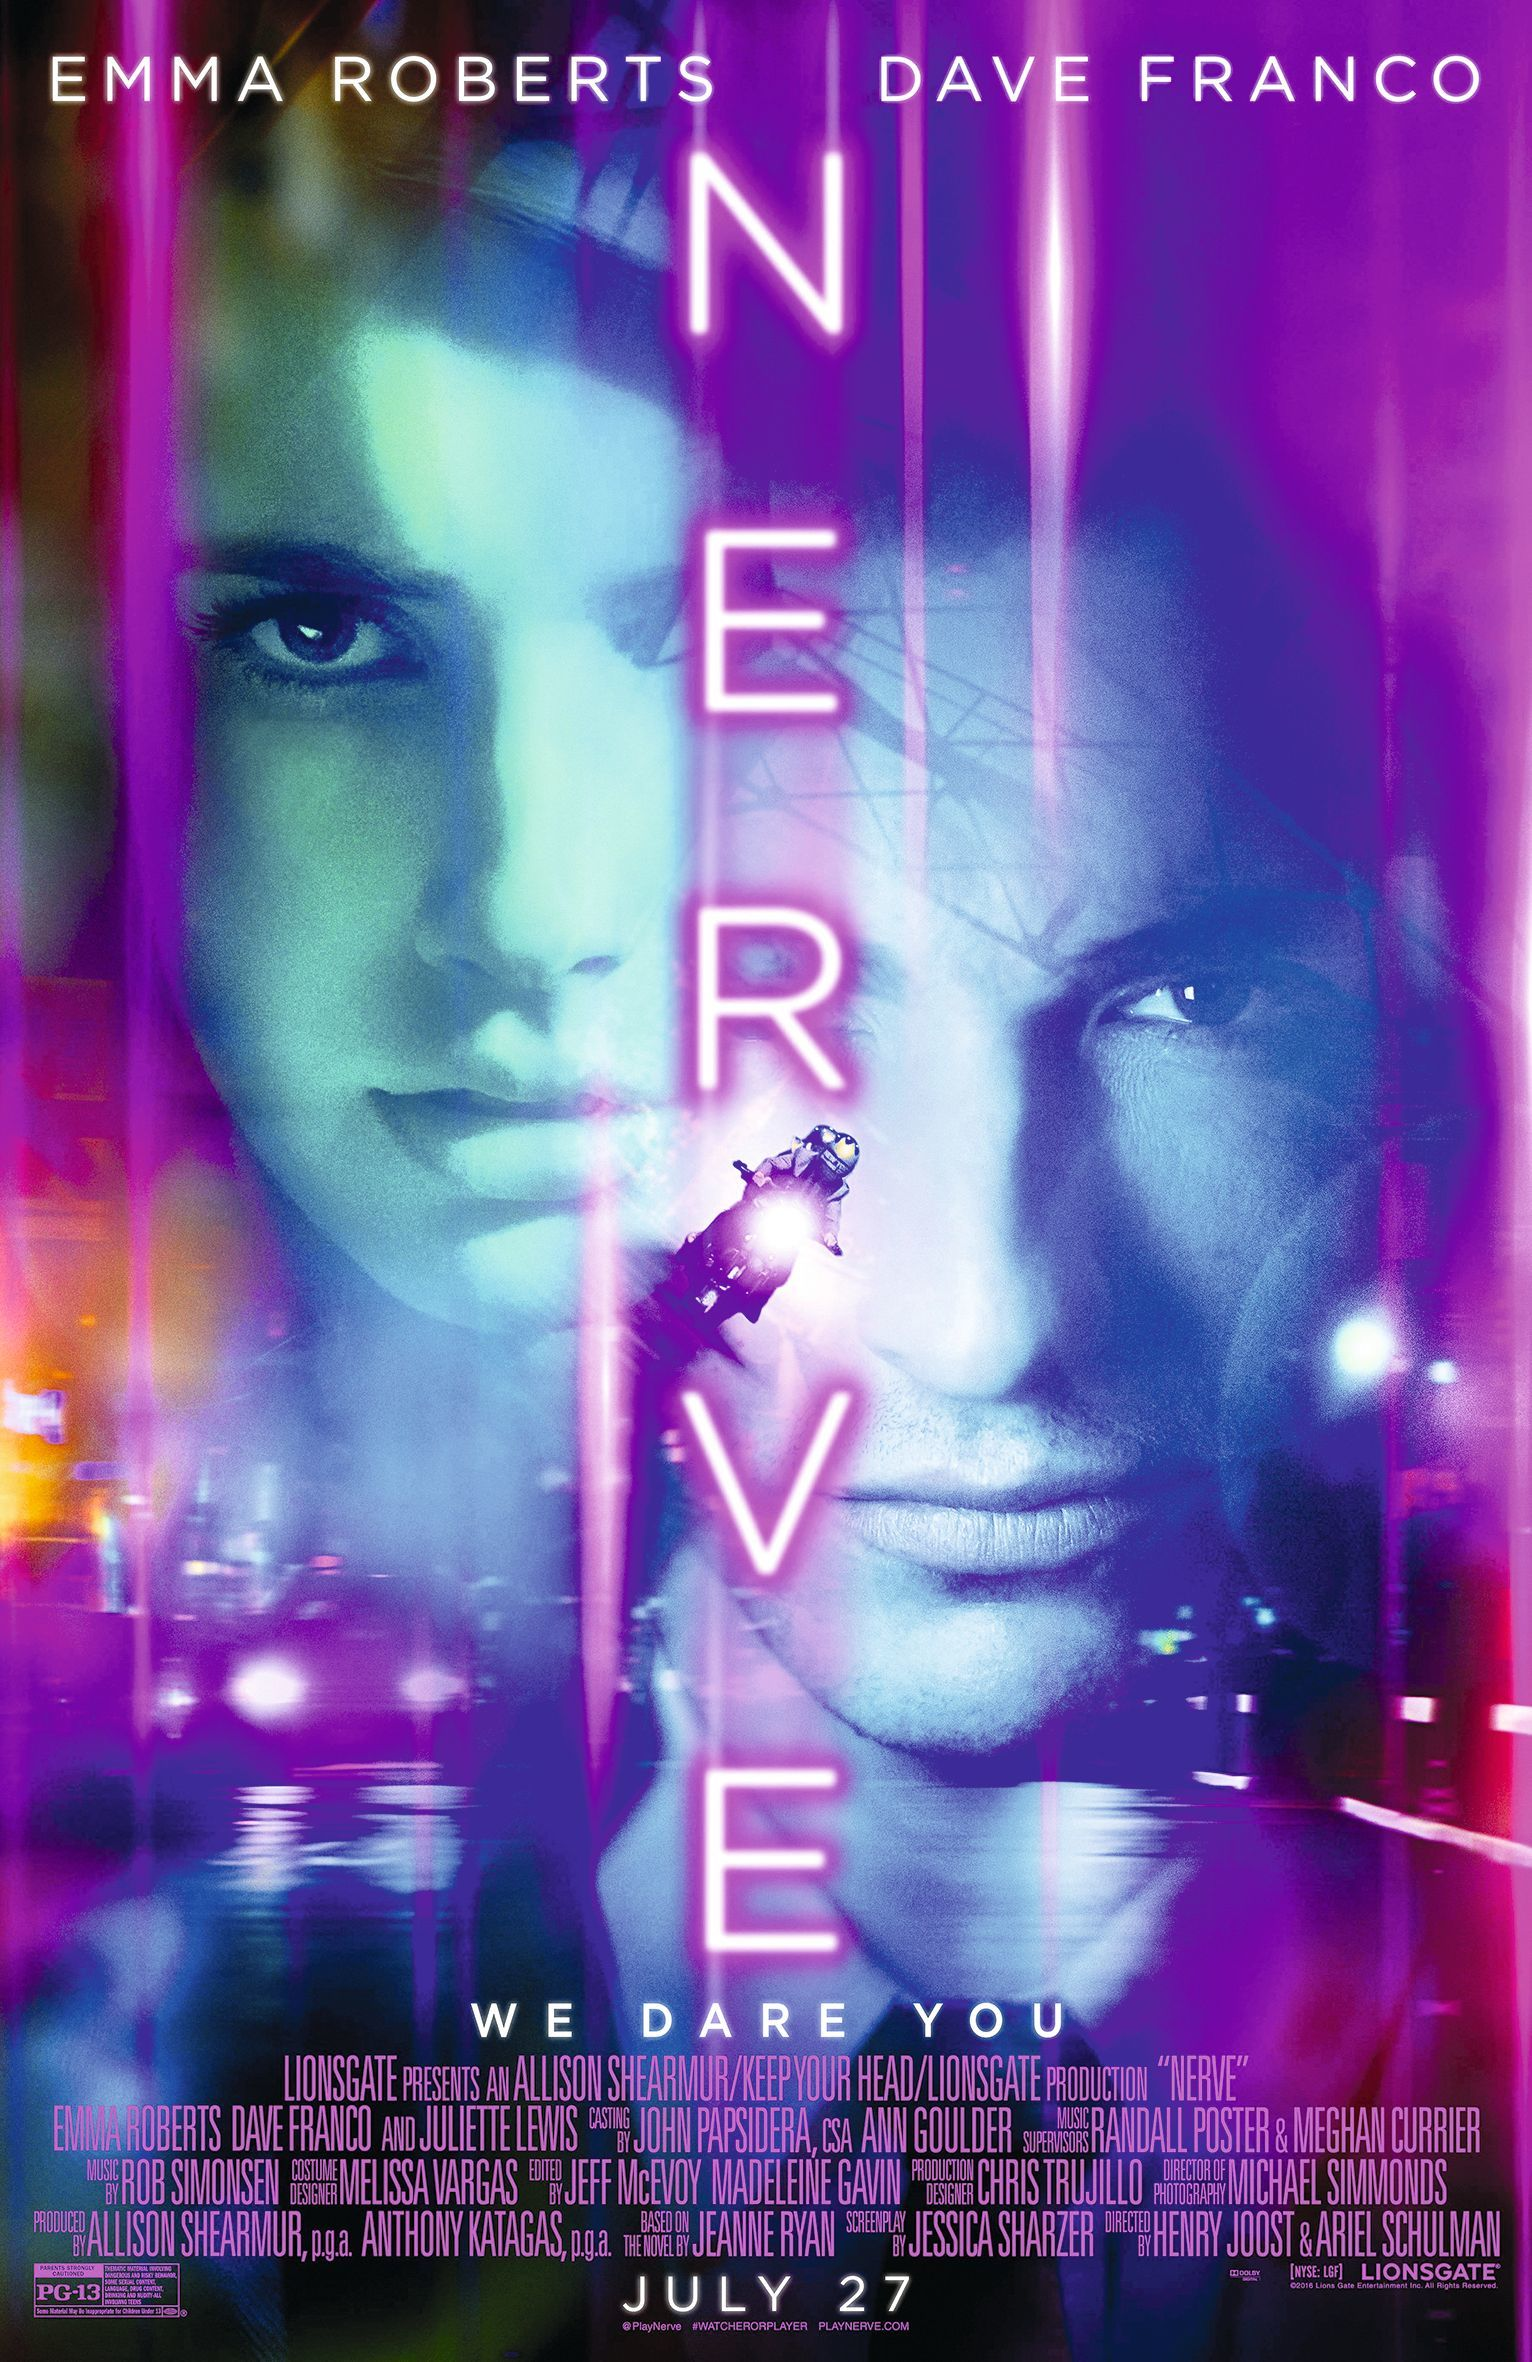 Poster of Nerve, by Ariel Schulman and Henry Joost